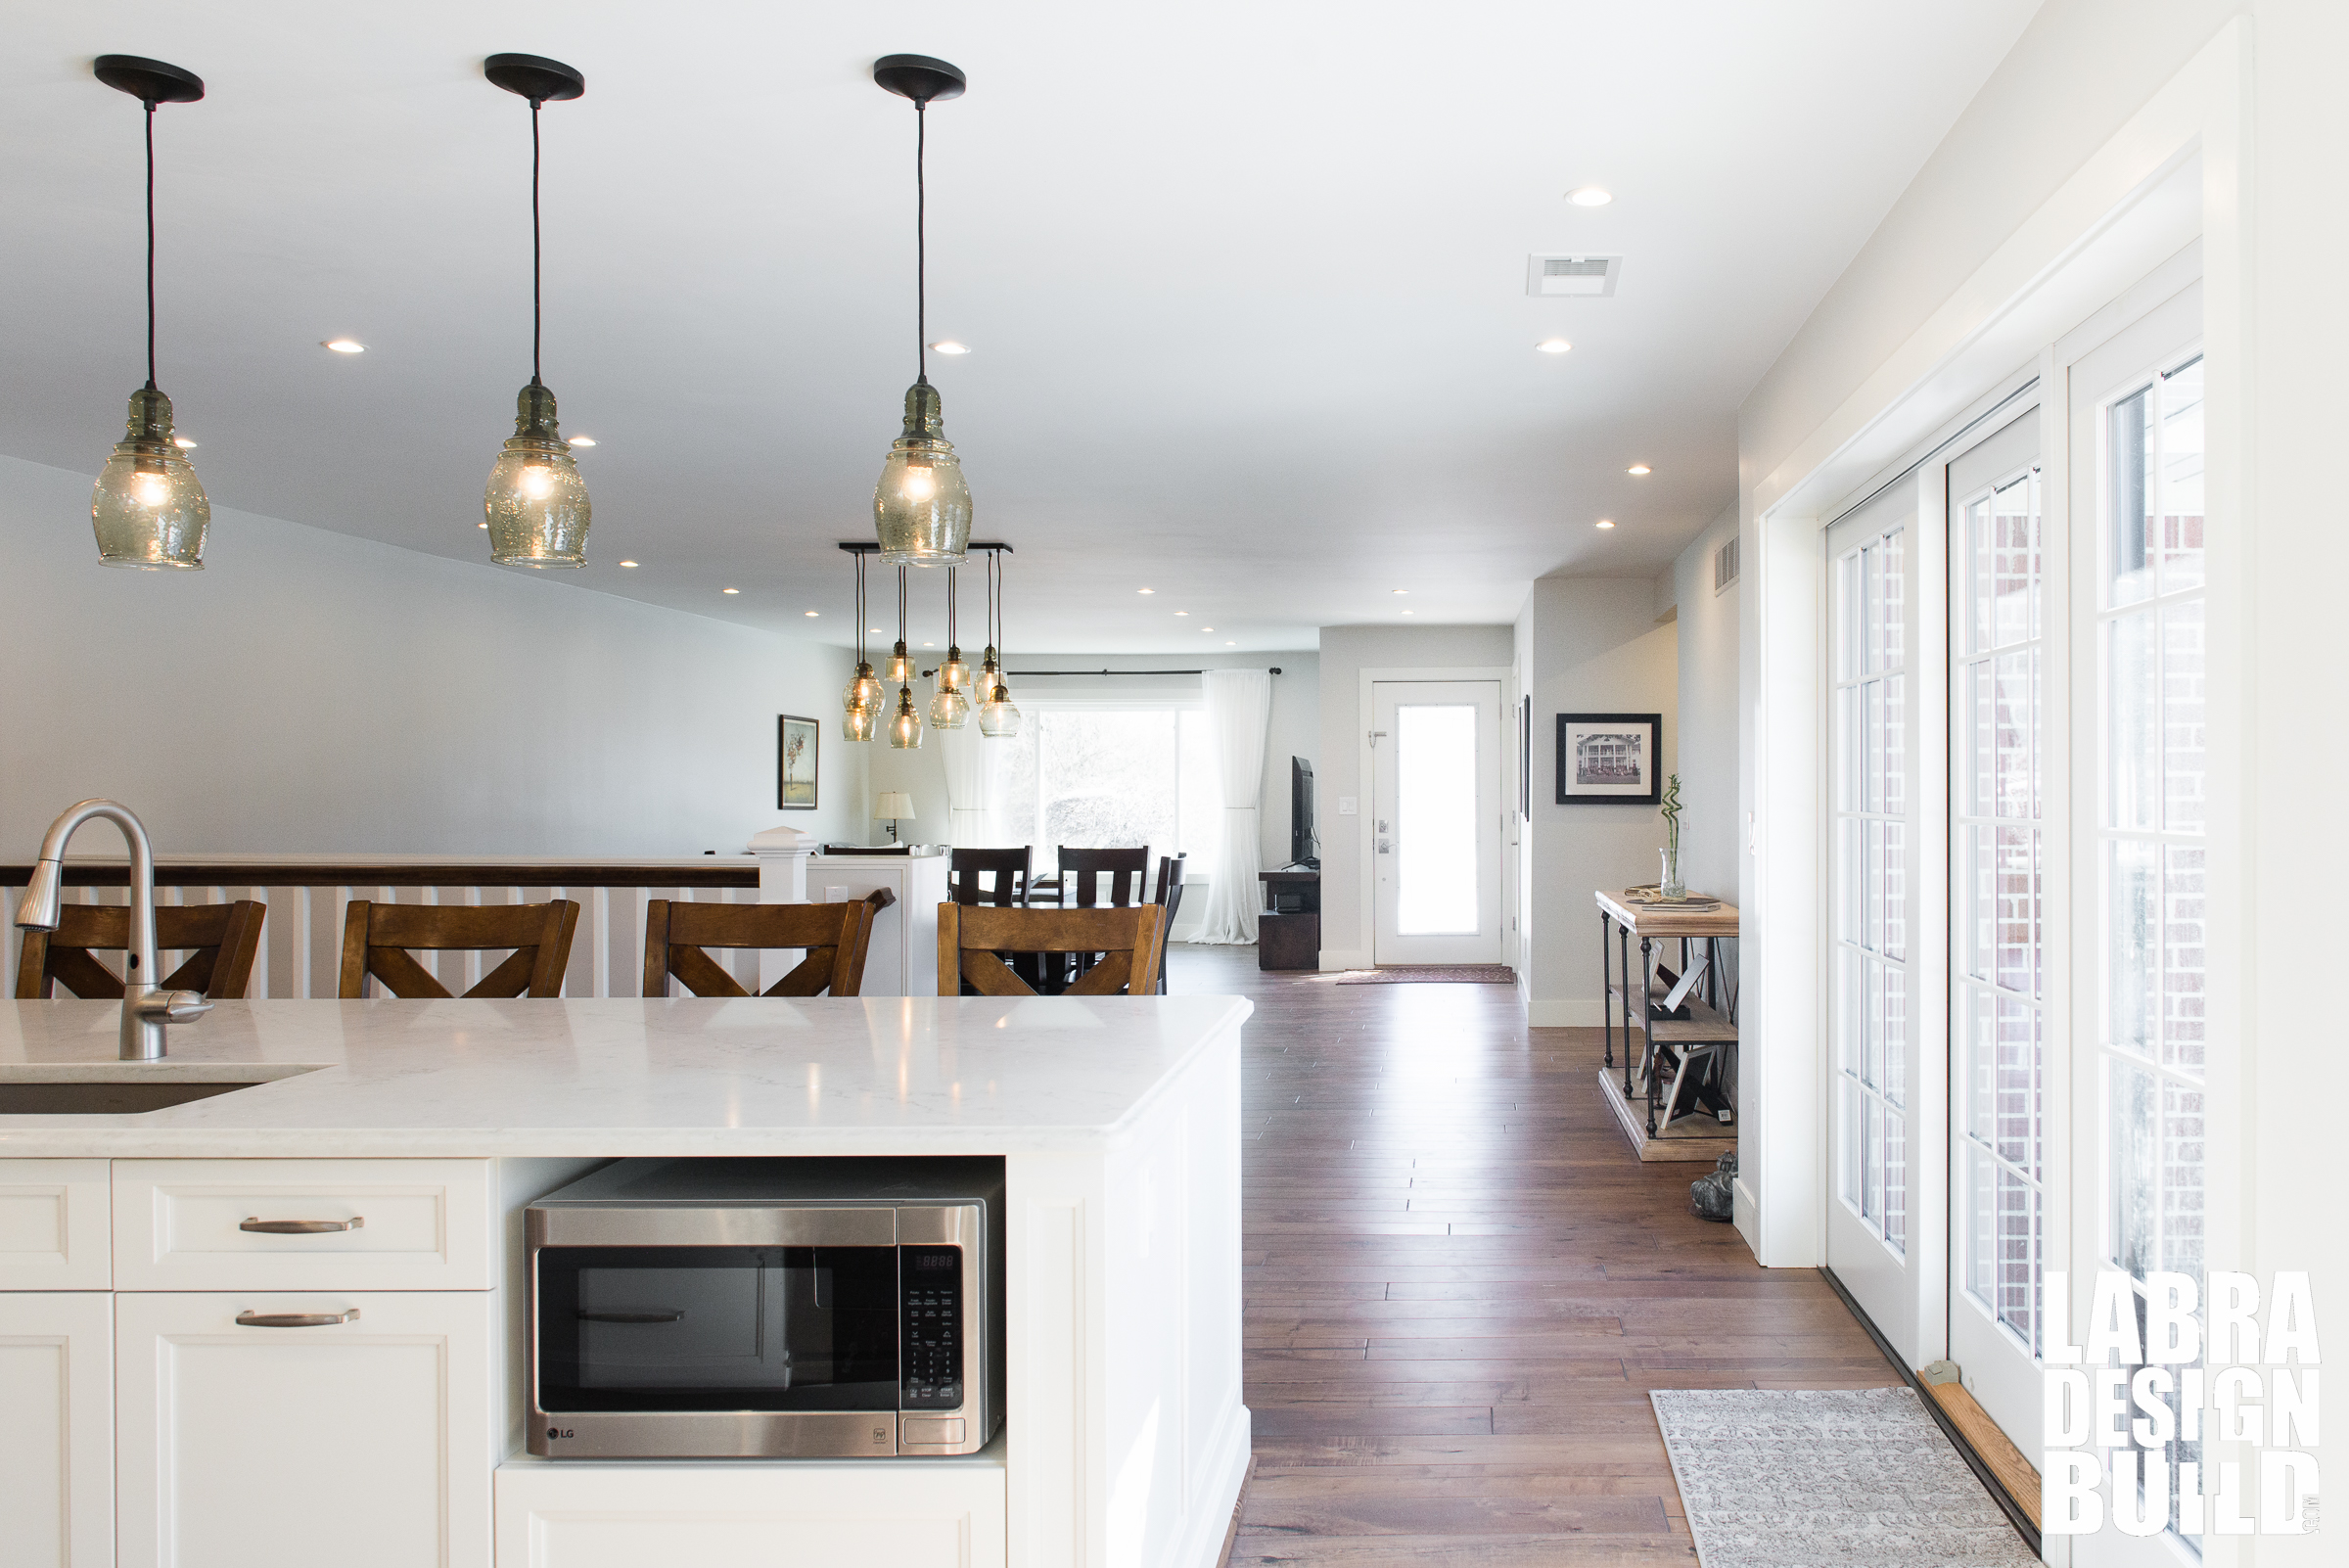 Home Addition and Remodel of a 1950\'s Ranch | Labra Design+Build